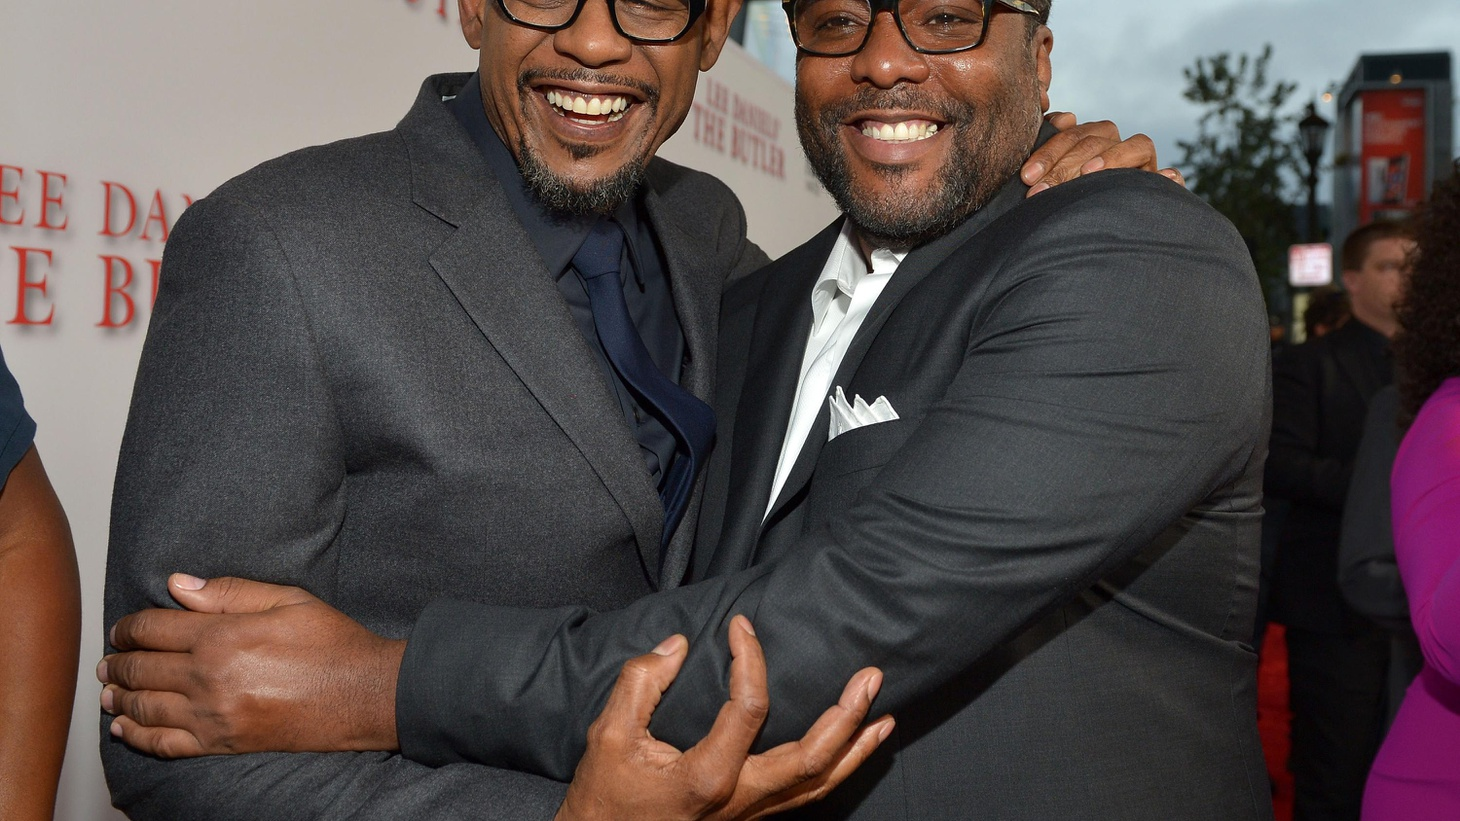 """Lee Daniels on the struggle and strategy behind funding his move, """"The Butler."""" Plus, how racism and homophobia affects his storytelling."""